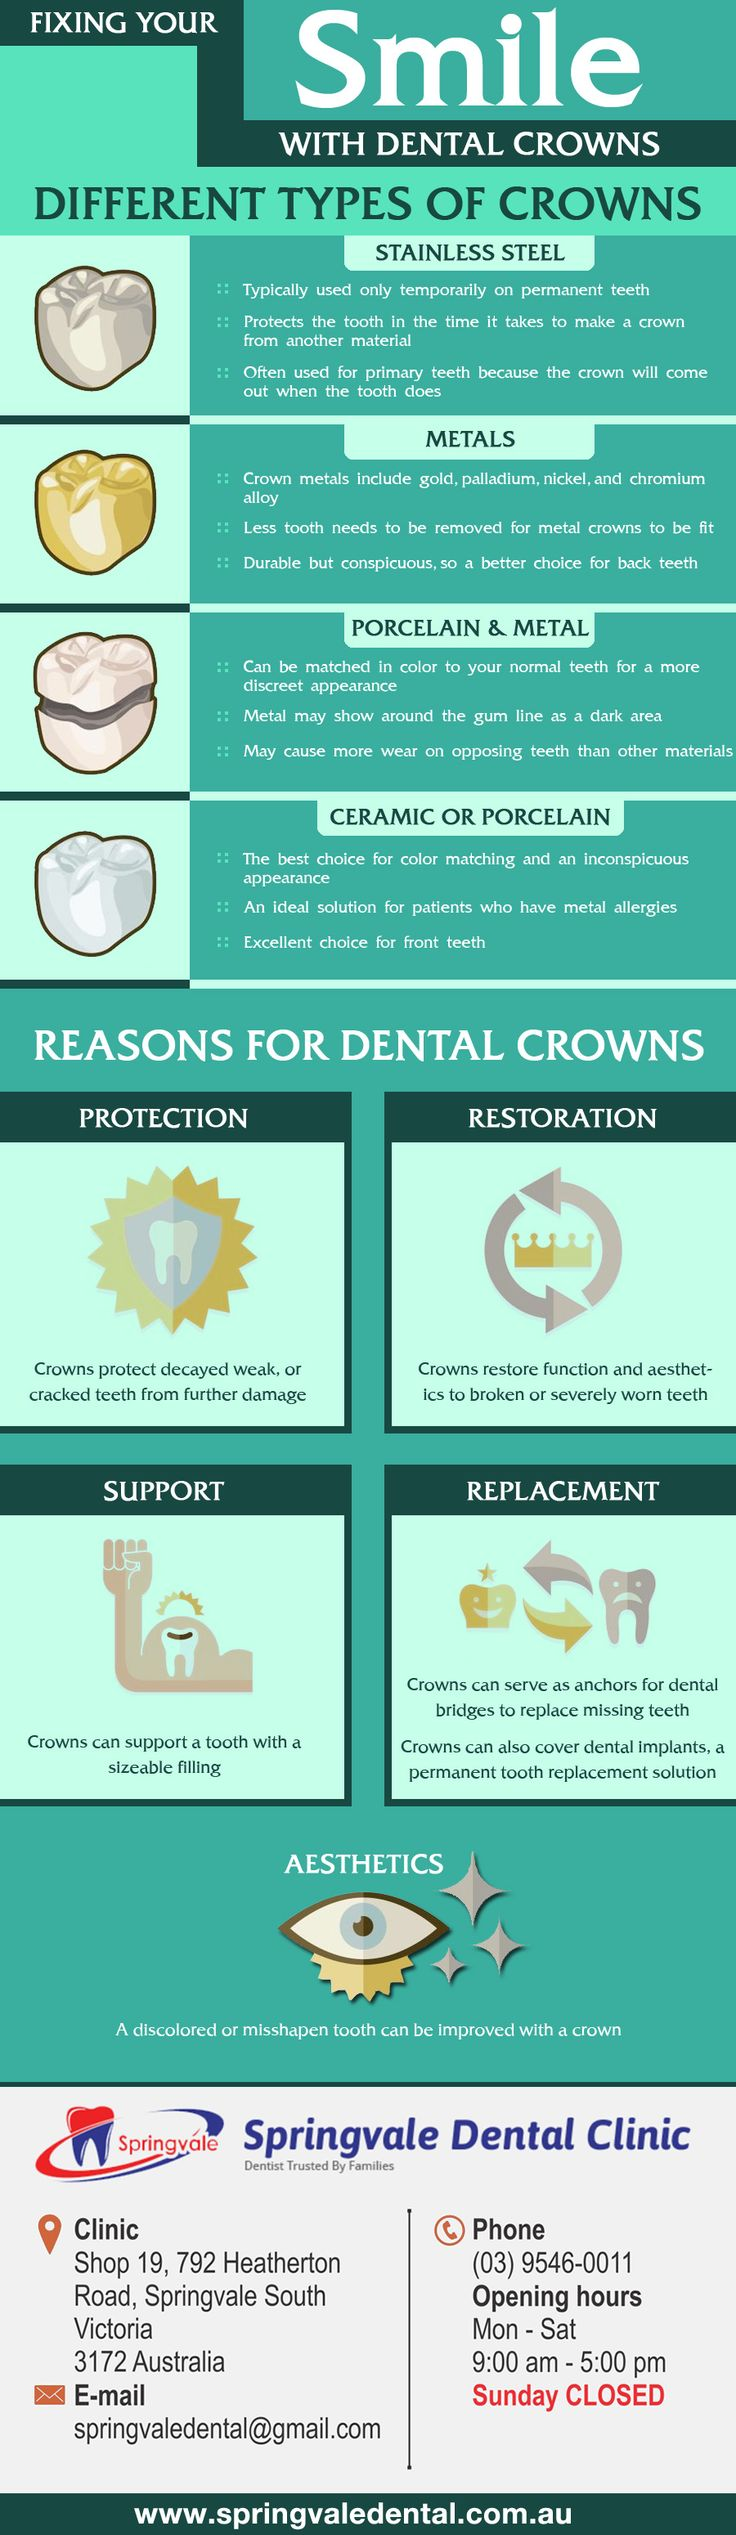 Which #Dental_Crown or Tooth Cap is right for you? Find out in this infographic, different type of Dental Crowns. To fix your smile with dental crowns visit Springvale Dental Clinic. http://bit.ly/1RxlFZL